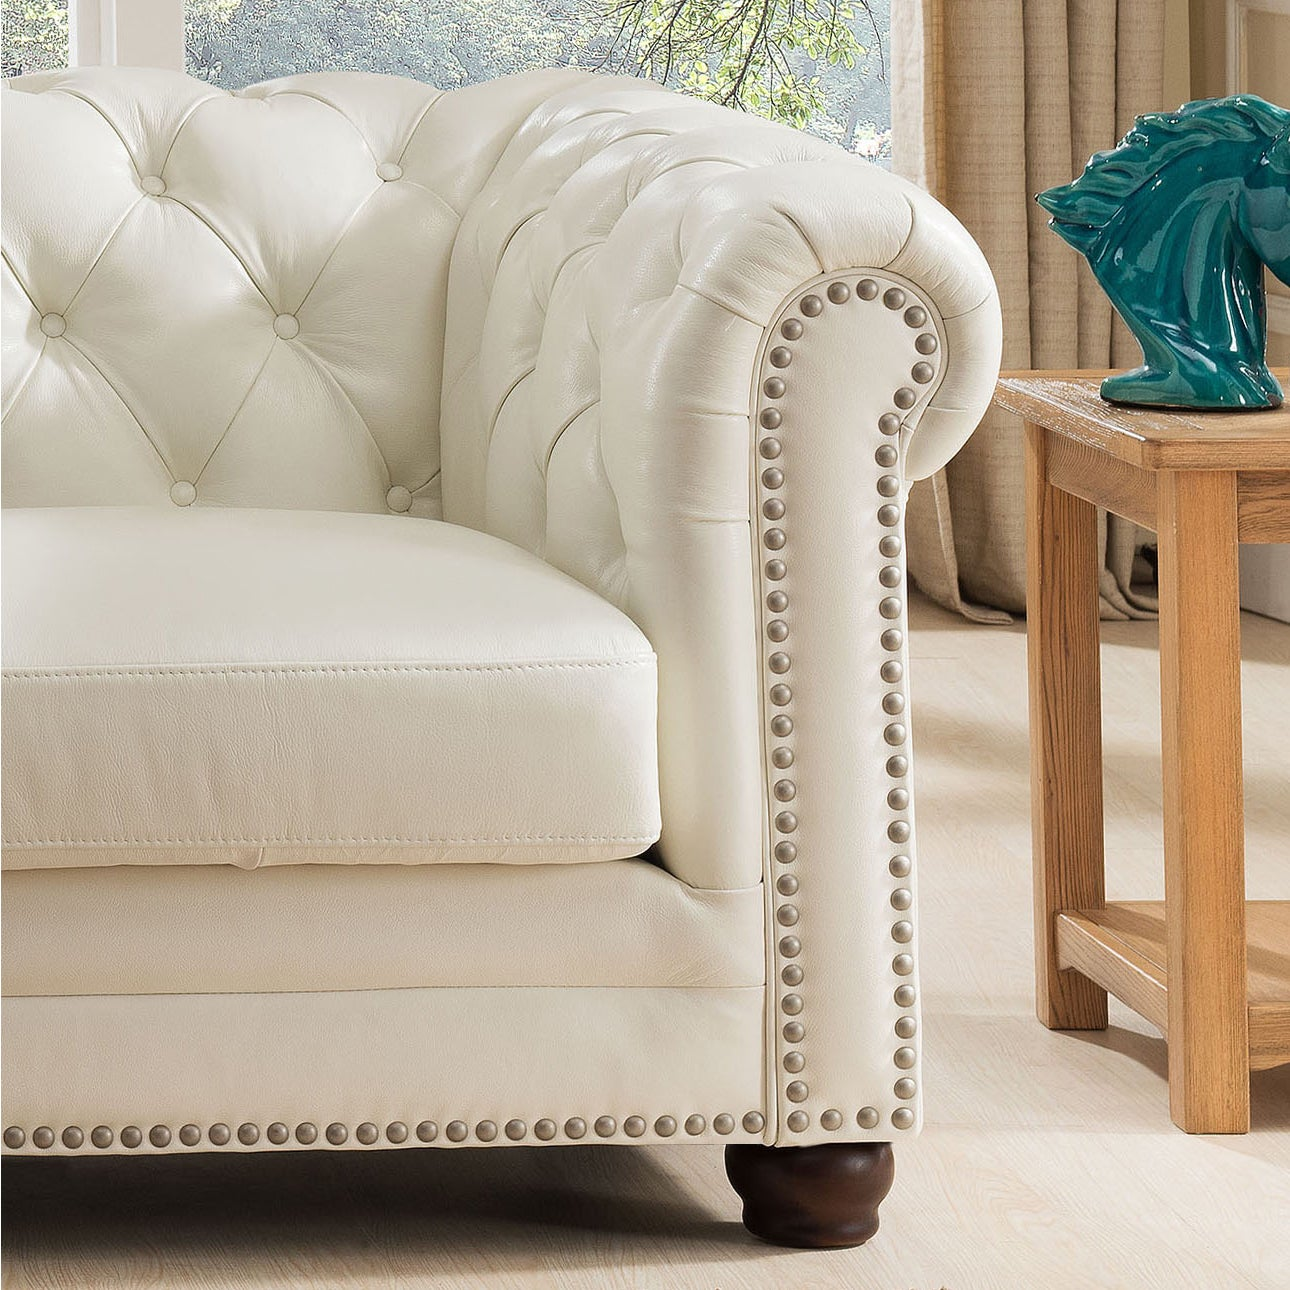 Nashville White Genuine Leather Chesterfield Sofa With Feather Down Seating Free Shipping Today 11624238